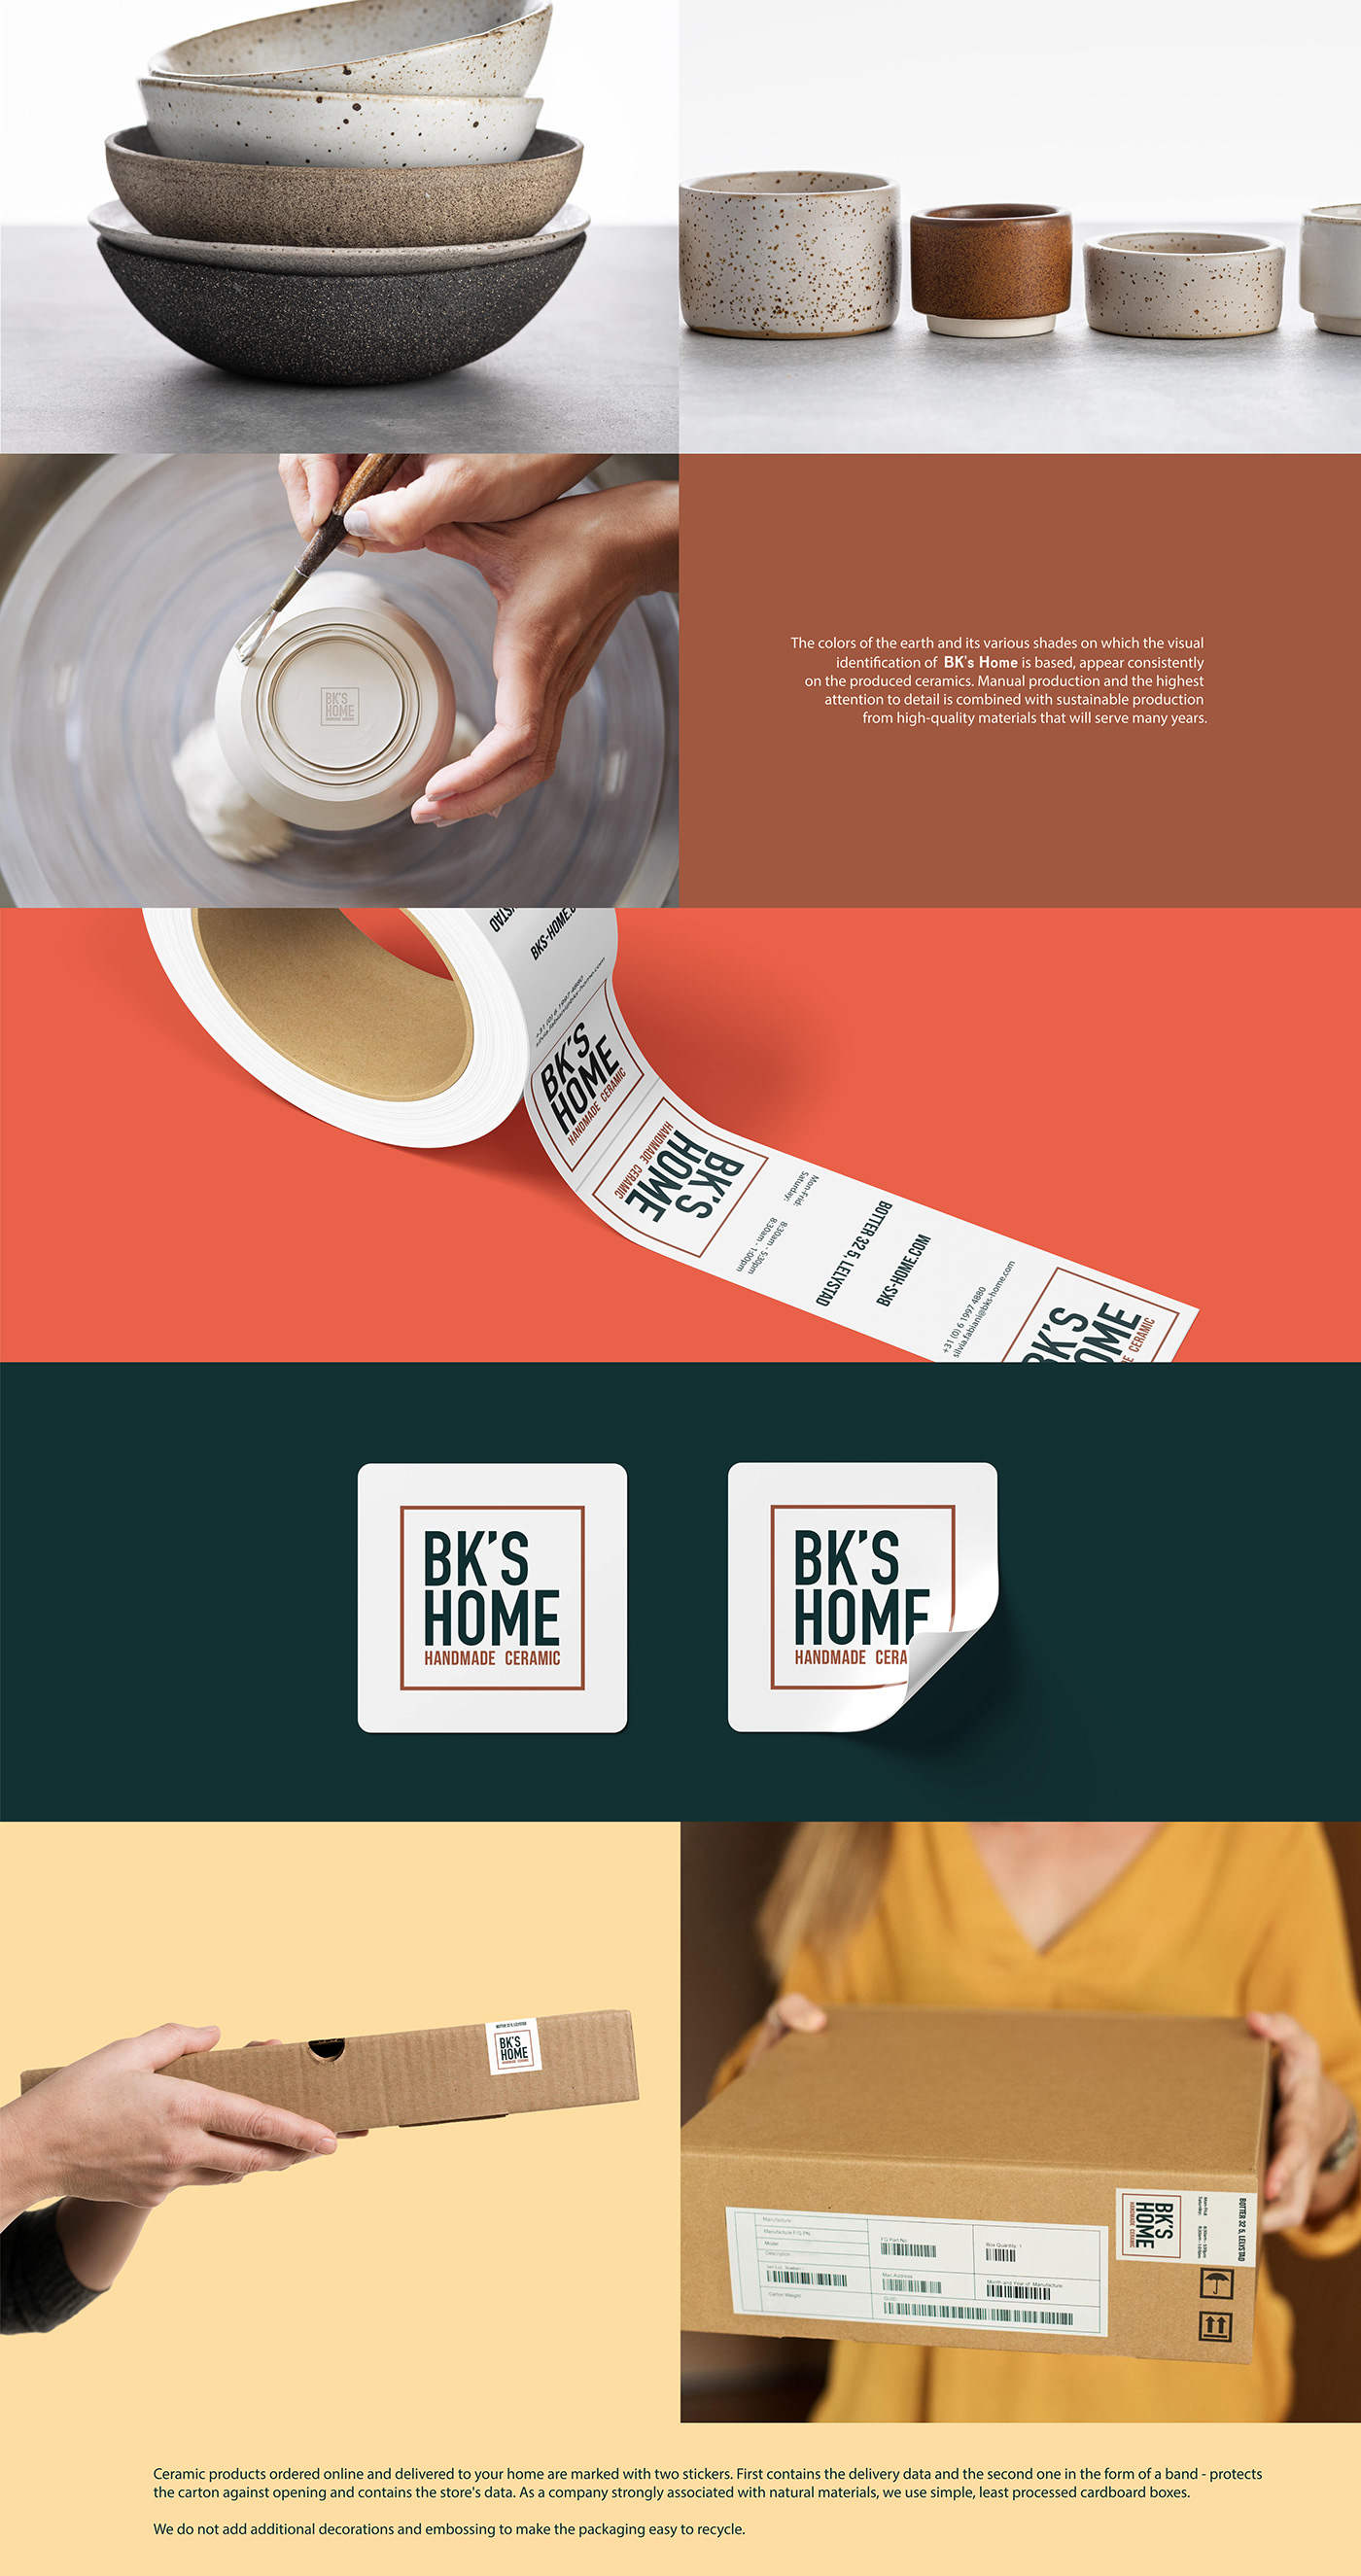 clay Pottery pottery business card Pottery House pottery identity pottery stickers pottery workshop branding